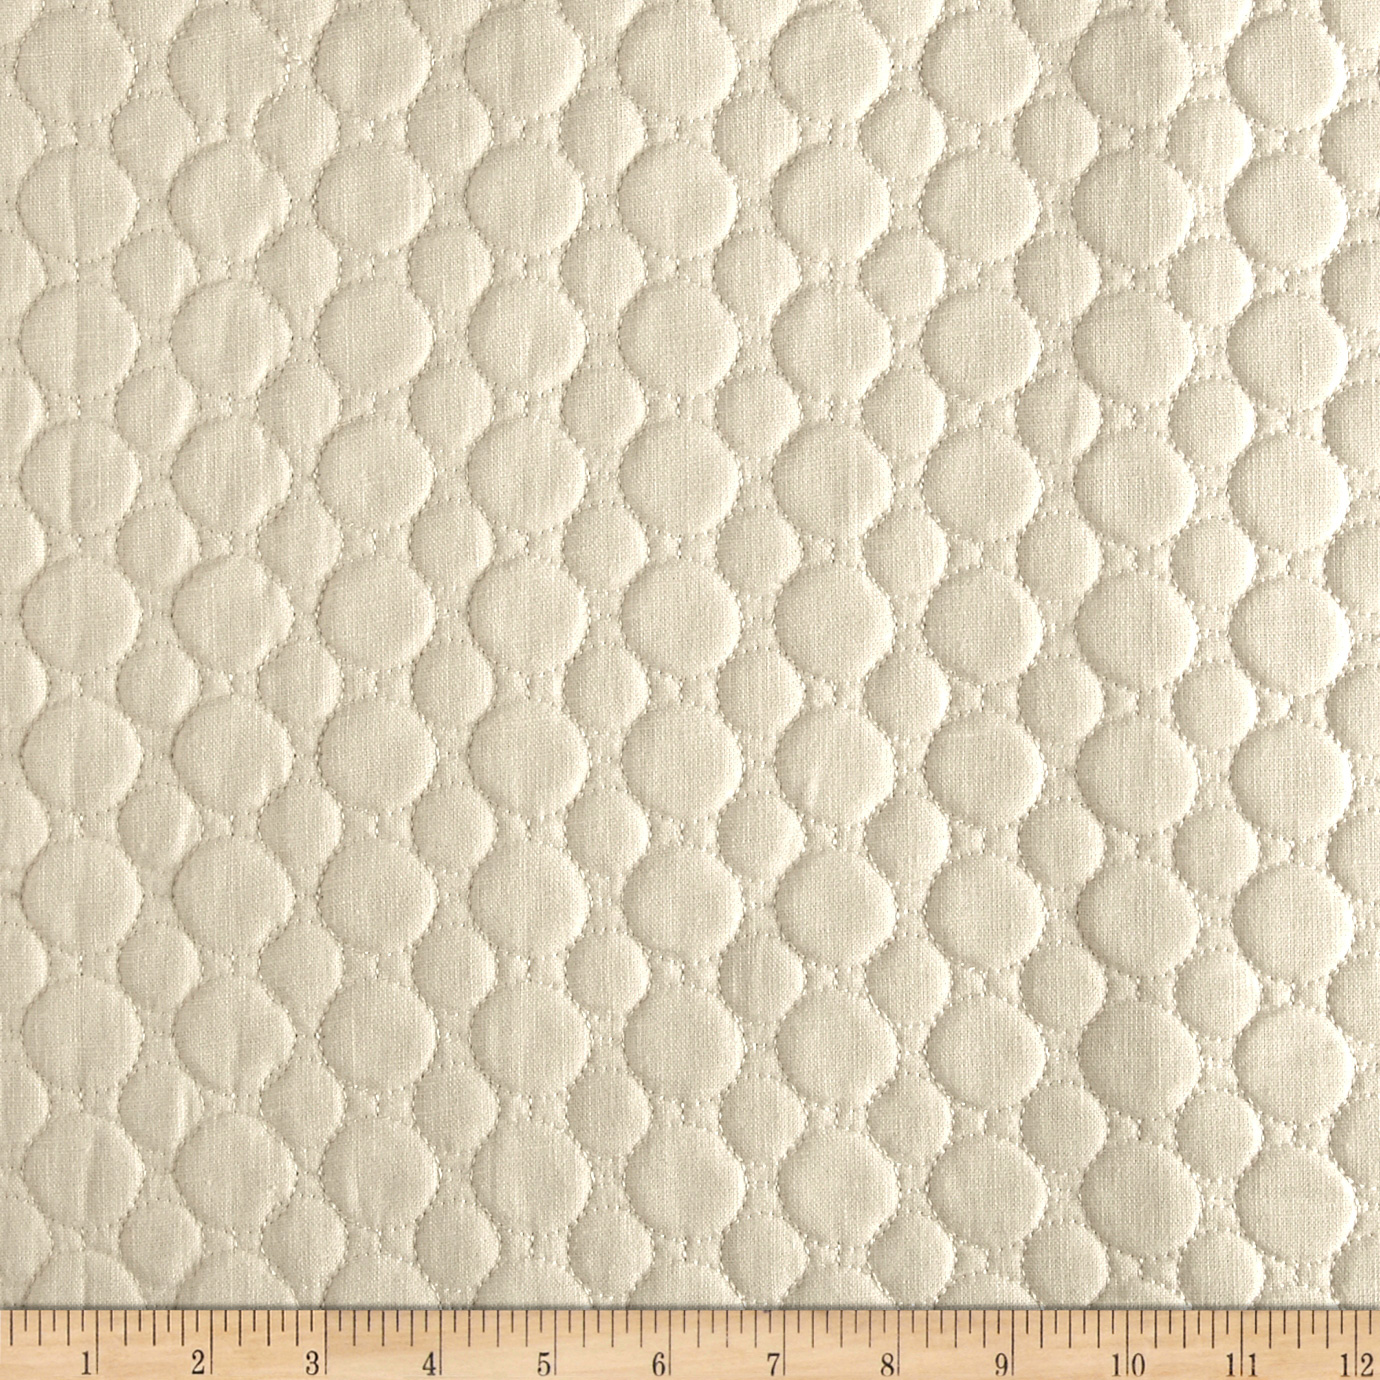 Richloom Matelasse Whythe Natural Home Decor Fabric